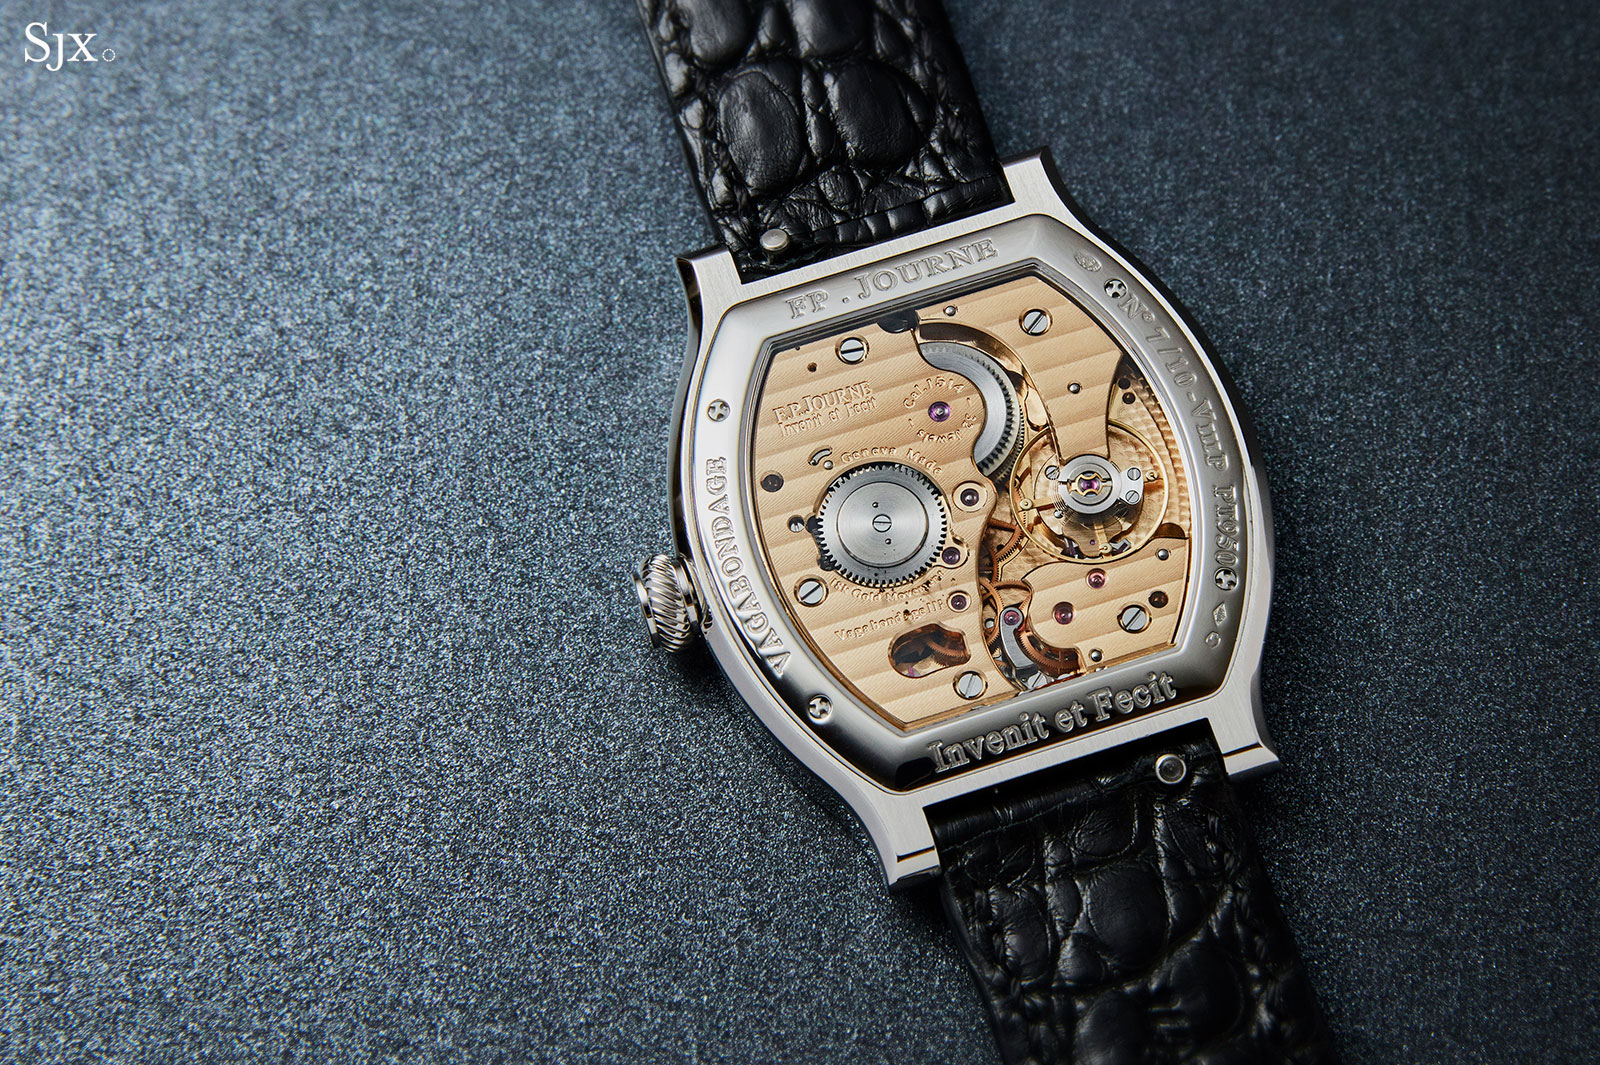 FP Journe Vagabondage III diamonds 2